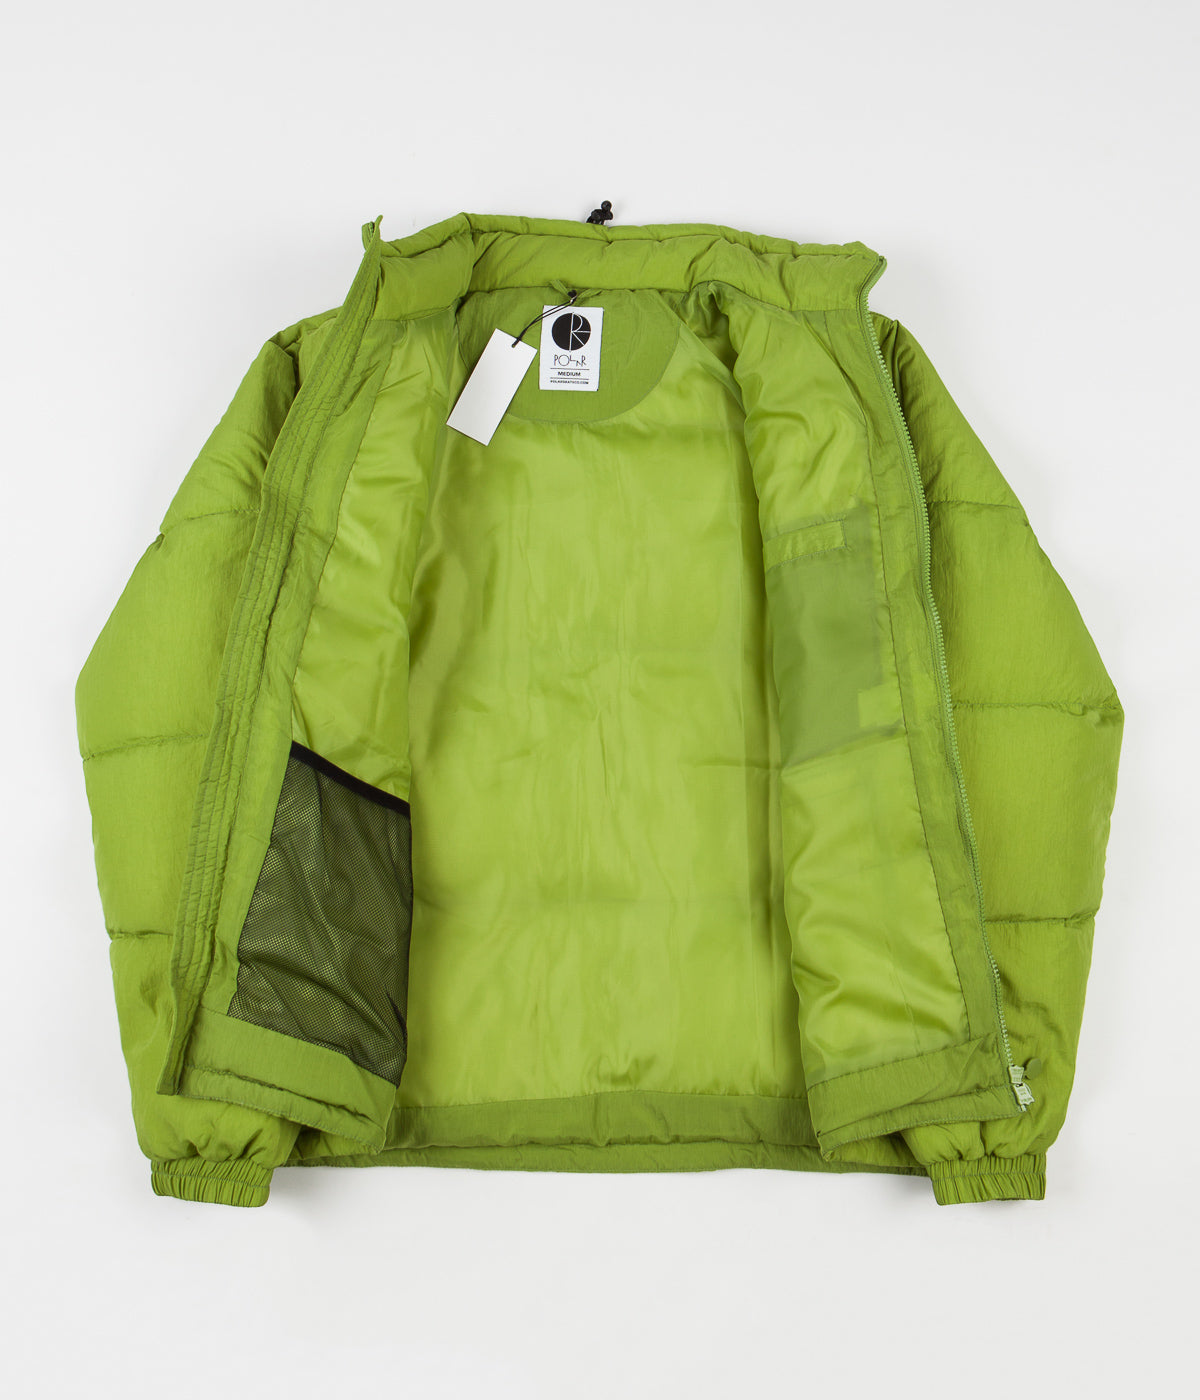 Polar Pocket Puffer Jacket - Parrot Green